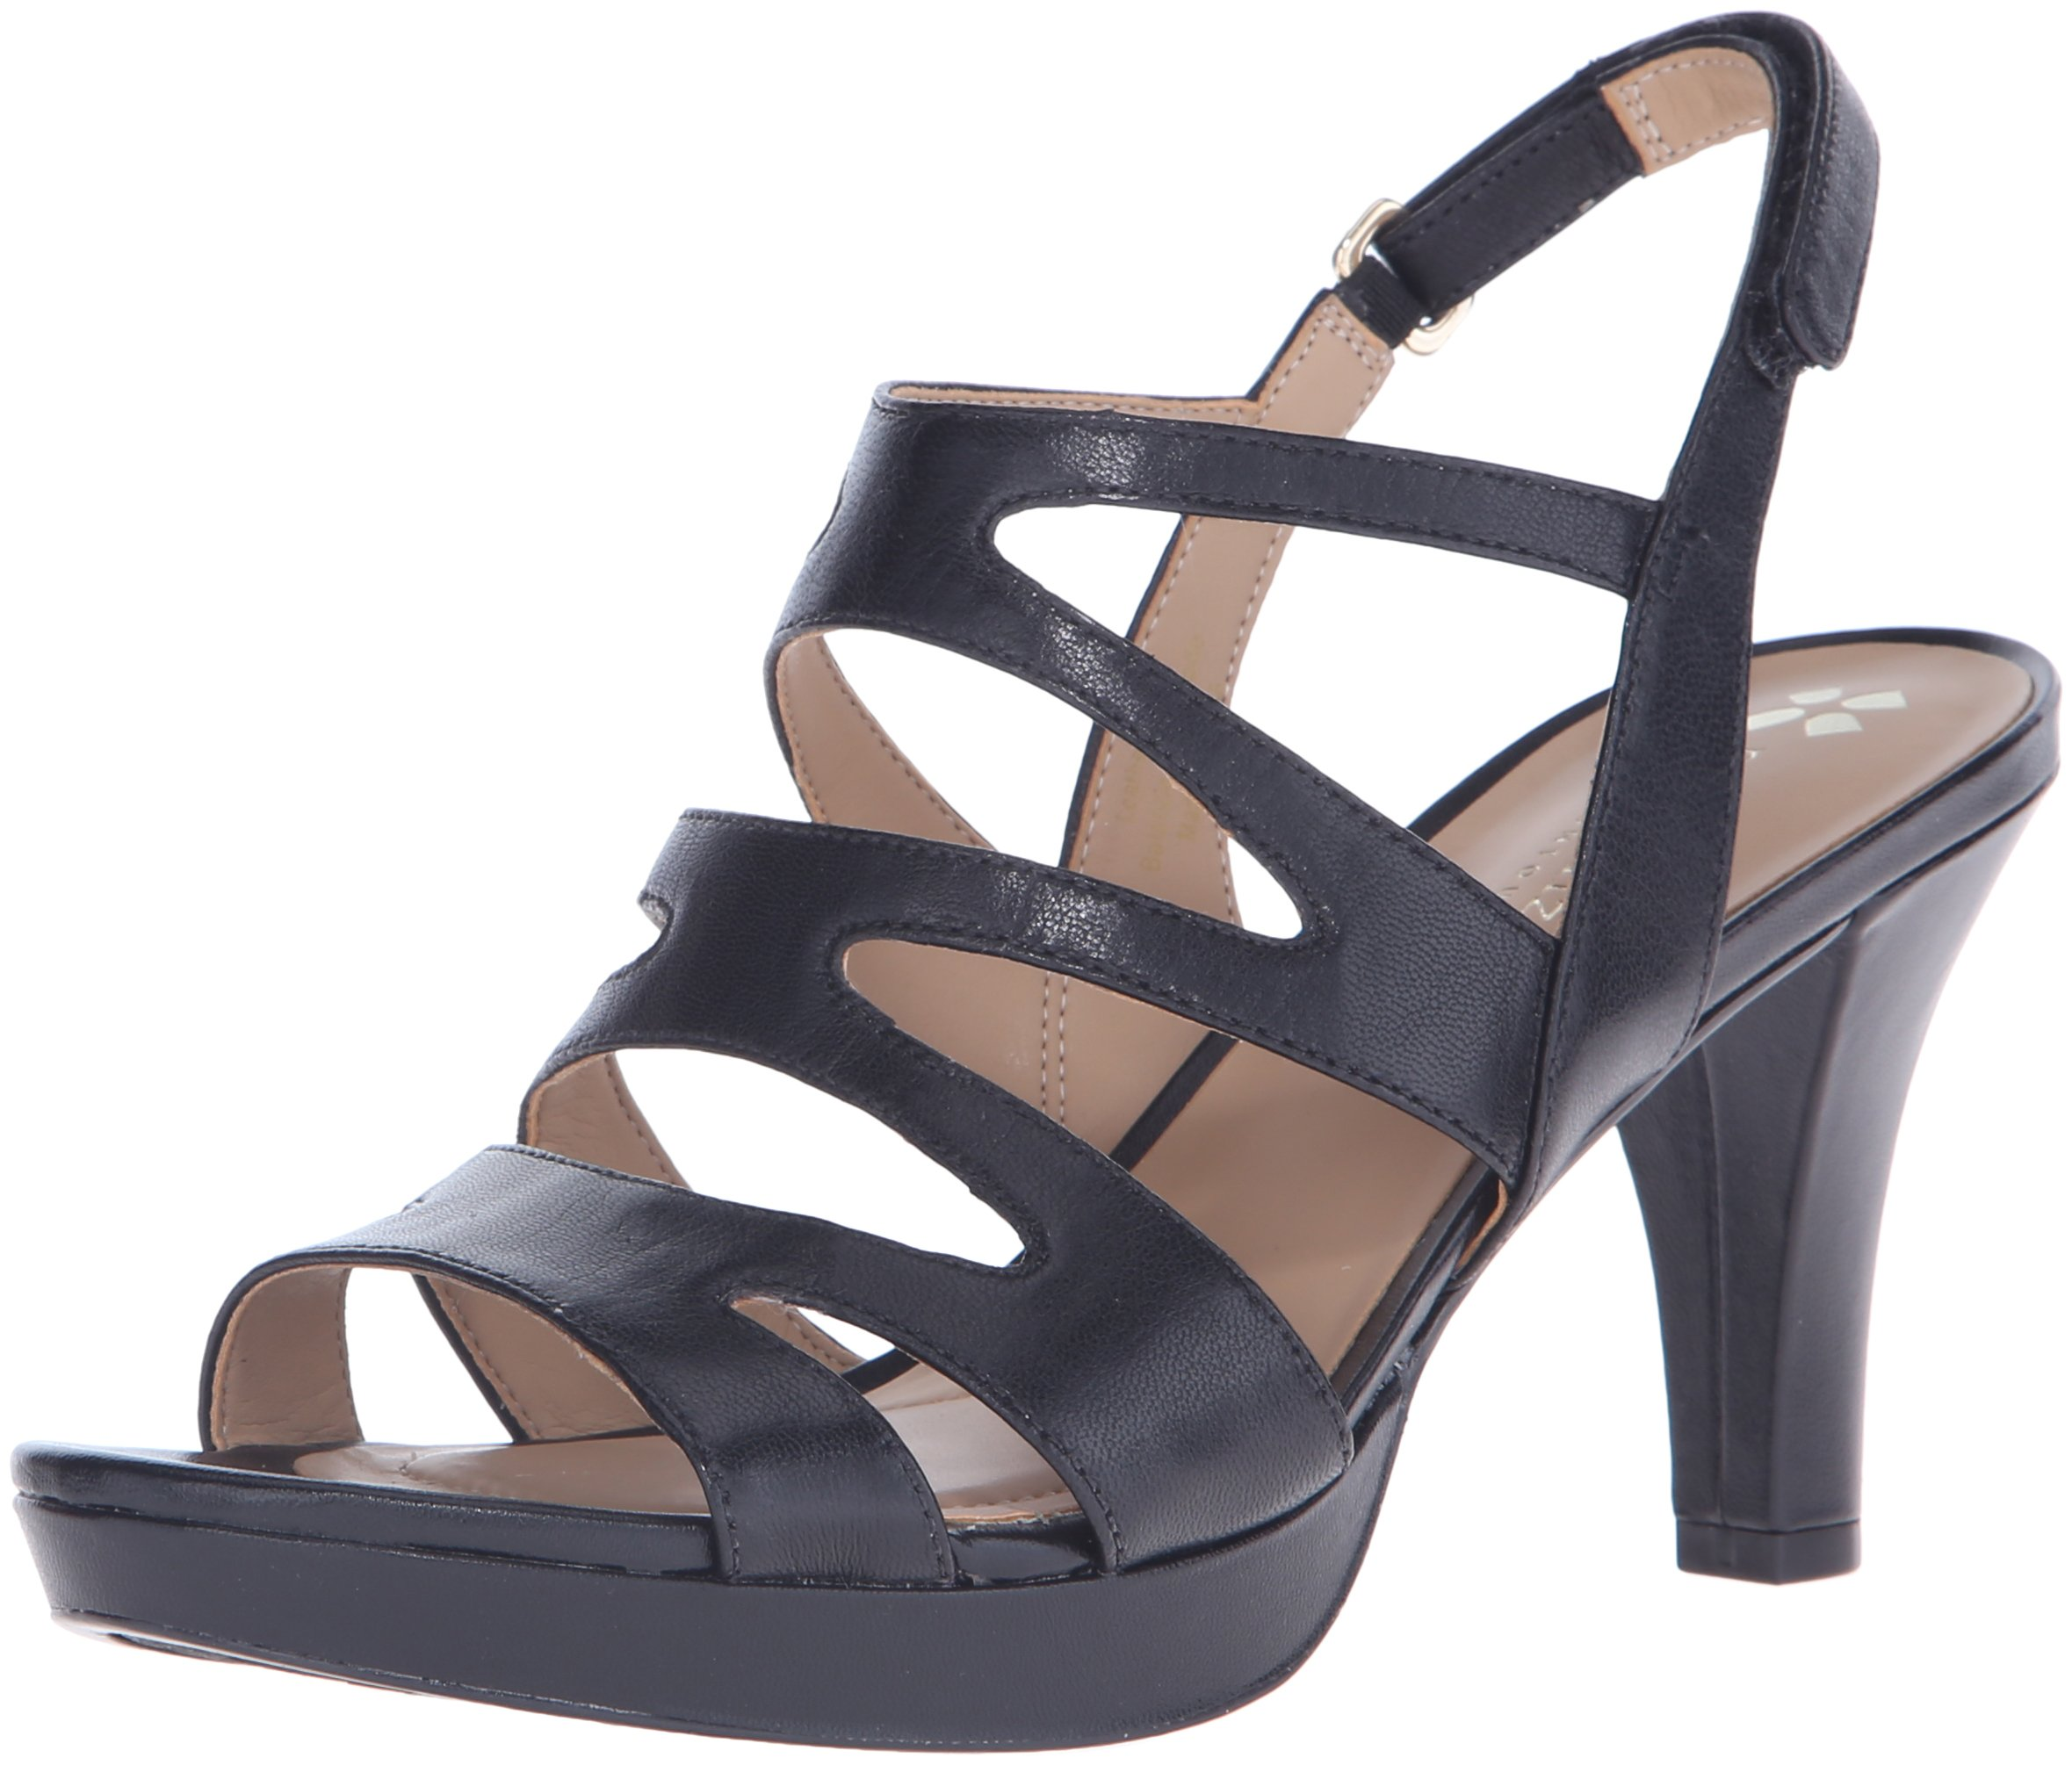 Naturalizer Women's Pressley Platform Dress Sandal, Black, 7 W US by Naturalizer (Image #1)